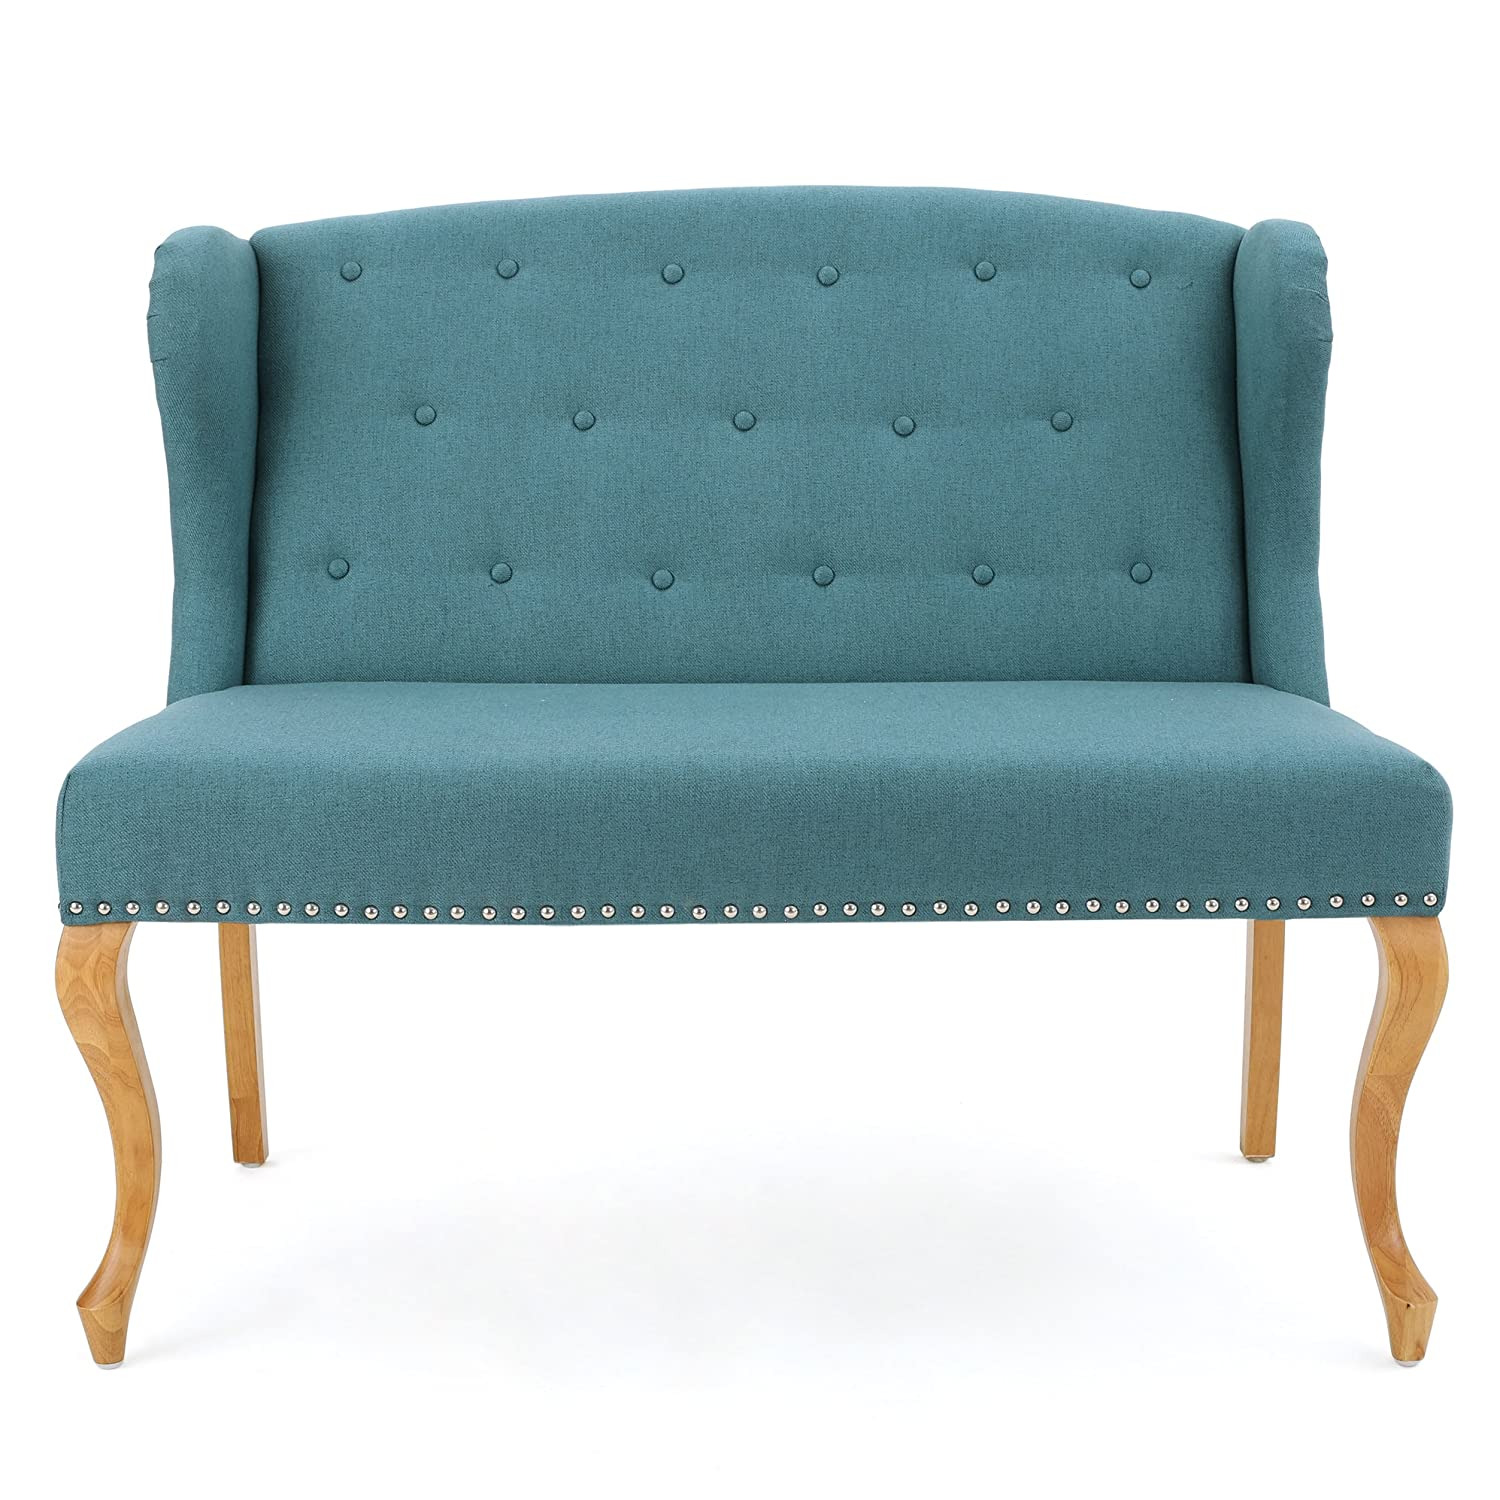 Peachy Christopher Knight Home 299488 Ellen Dark Teal Fabric Loveseat W Nailhead Accents Alphanode Cool Chair Designs And Ideas Alphanodeonline